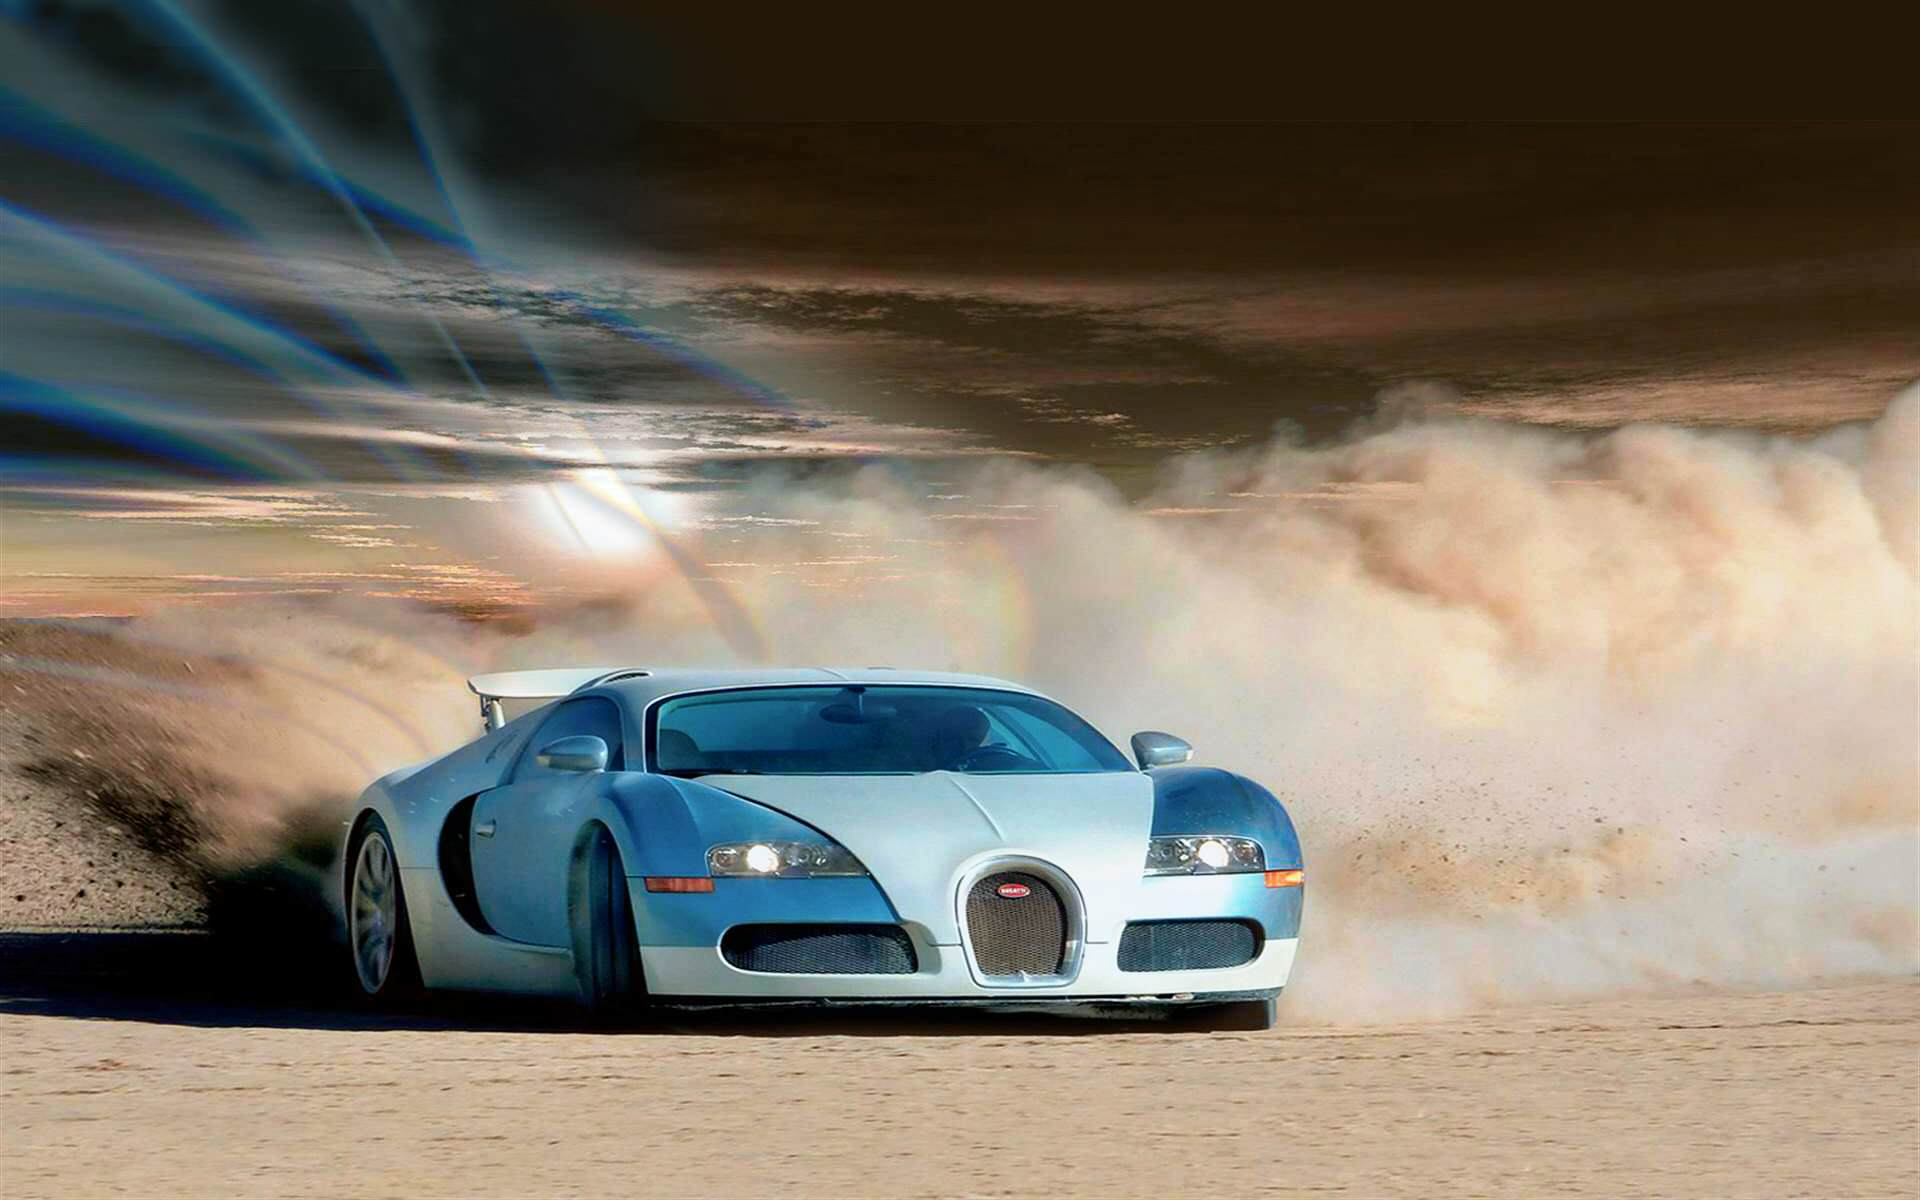 4000+ Wallpaper Abyss Cars HD Paling Keren